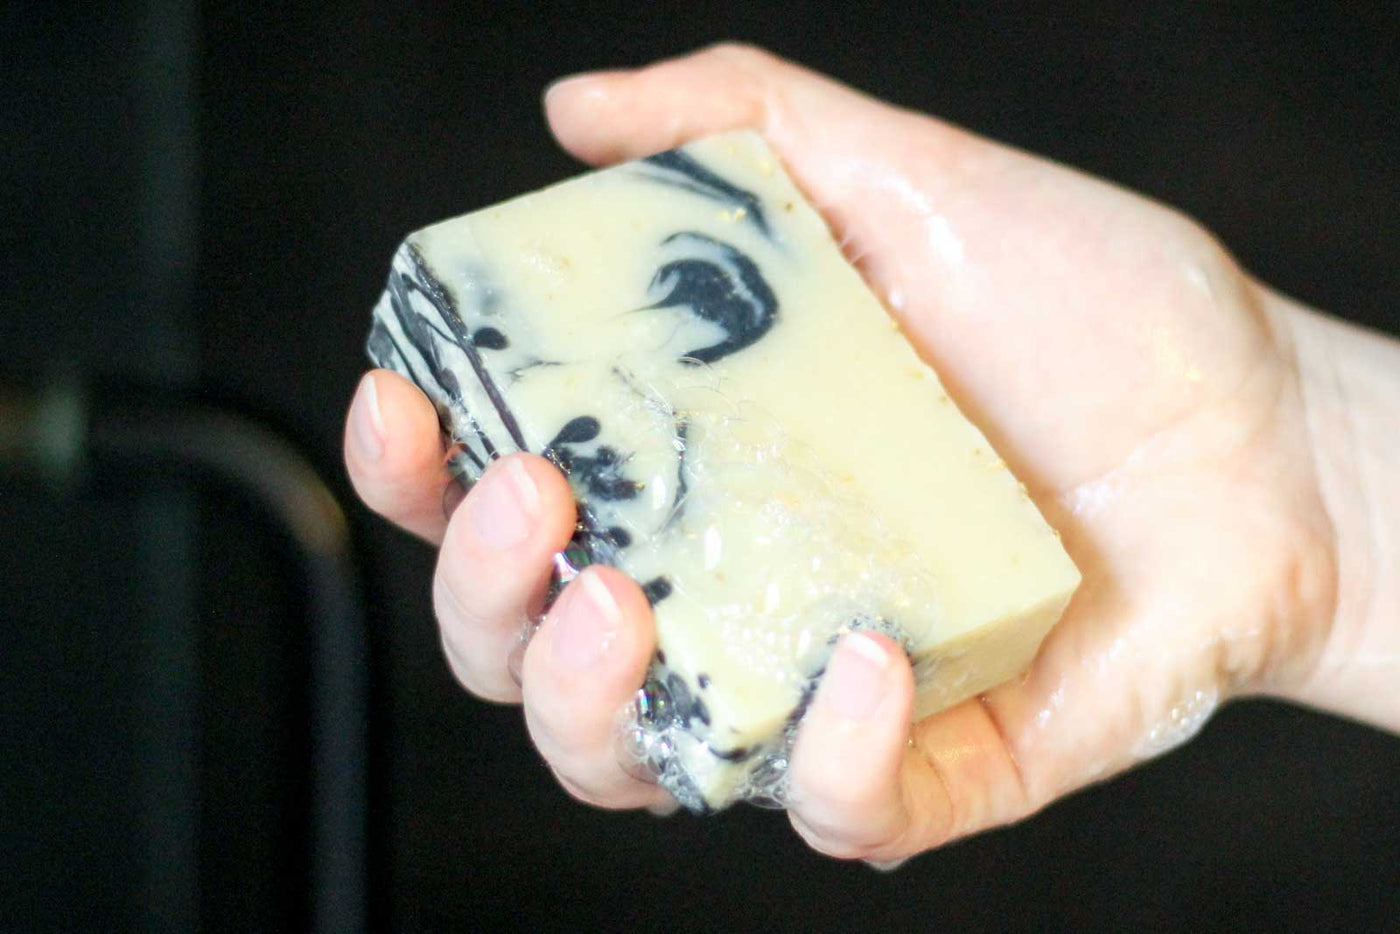 A wet hand holds a sudsy soap bar with black charcoal swirls